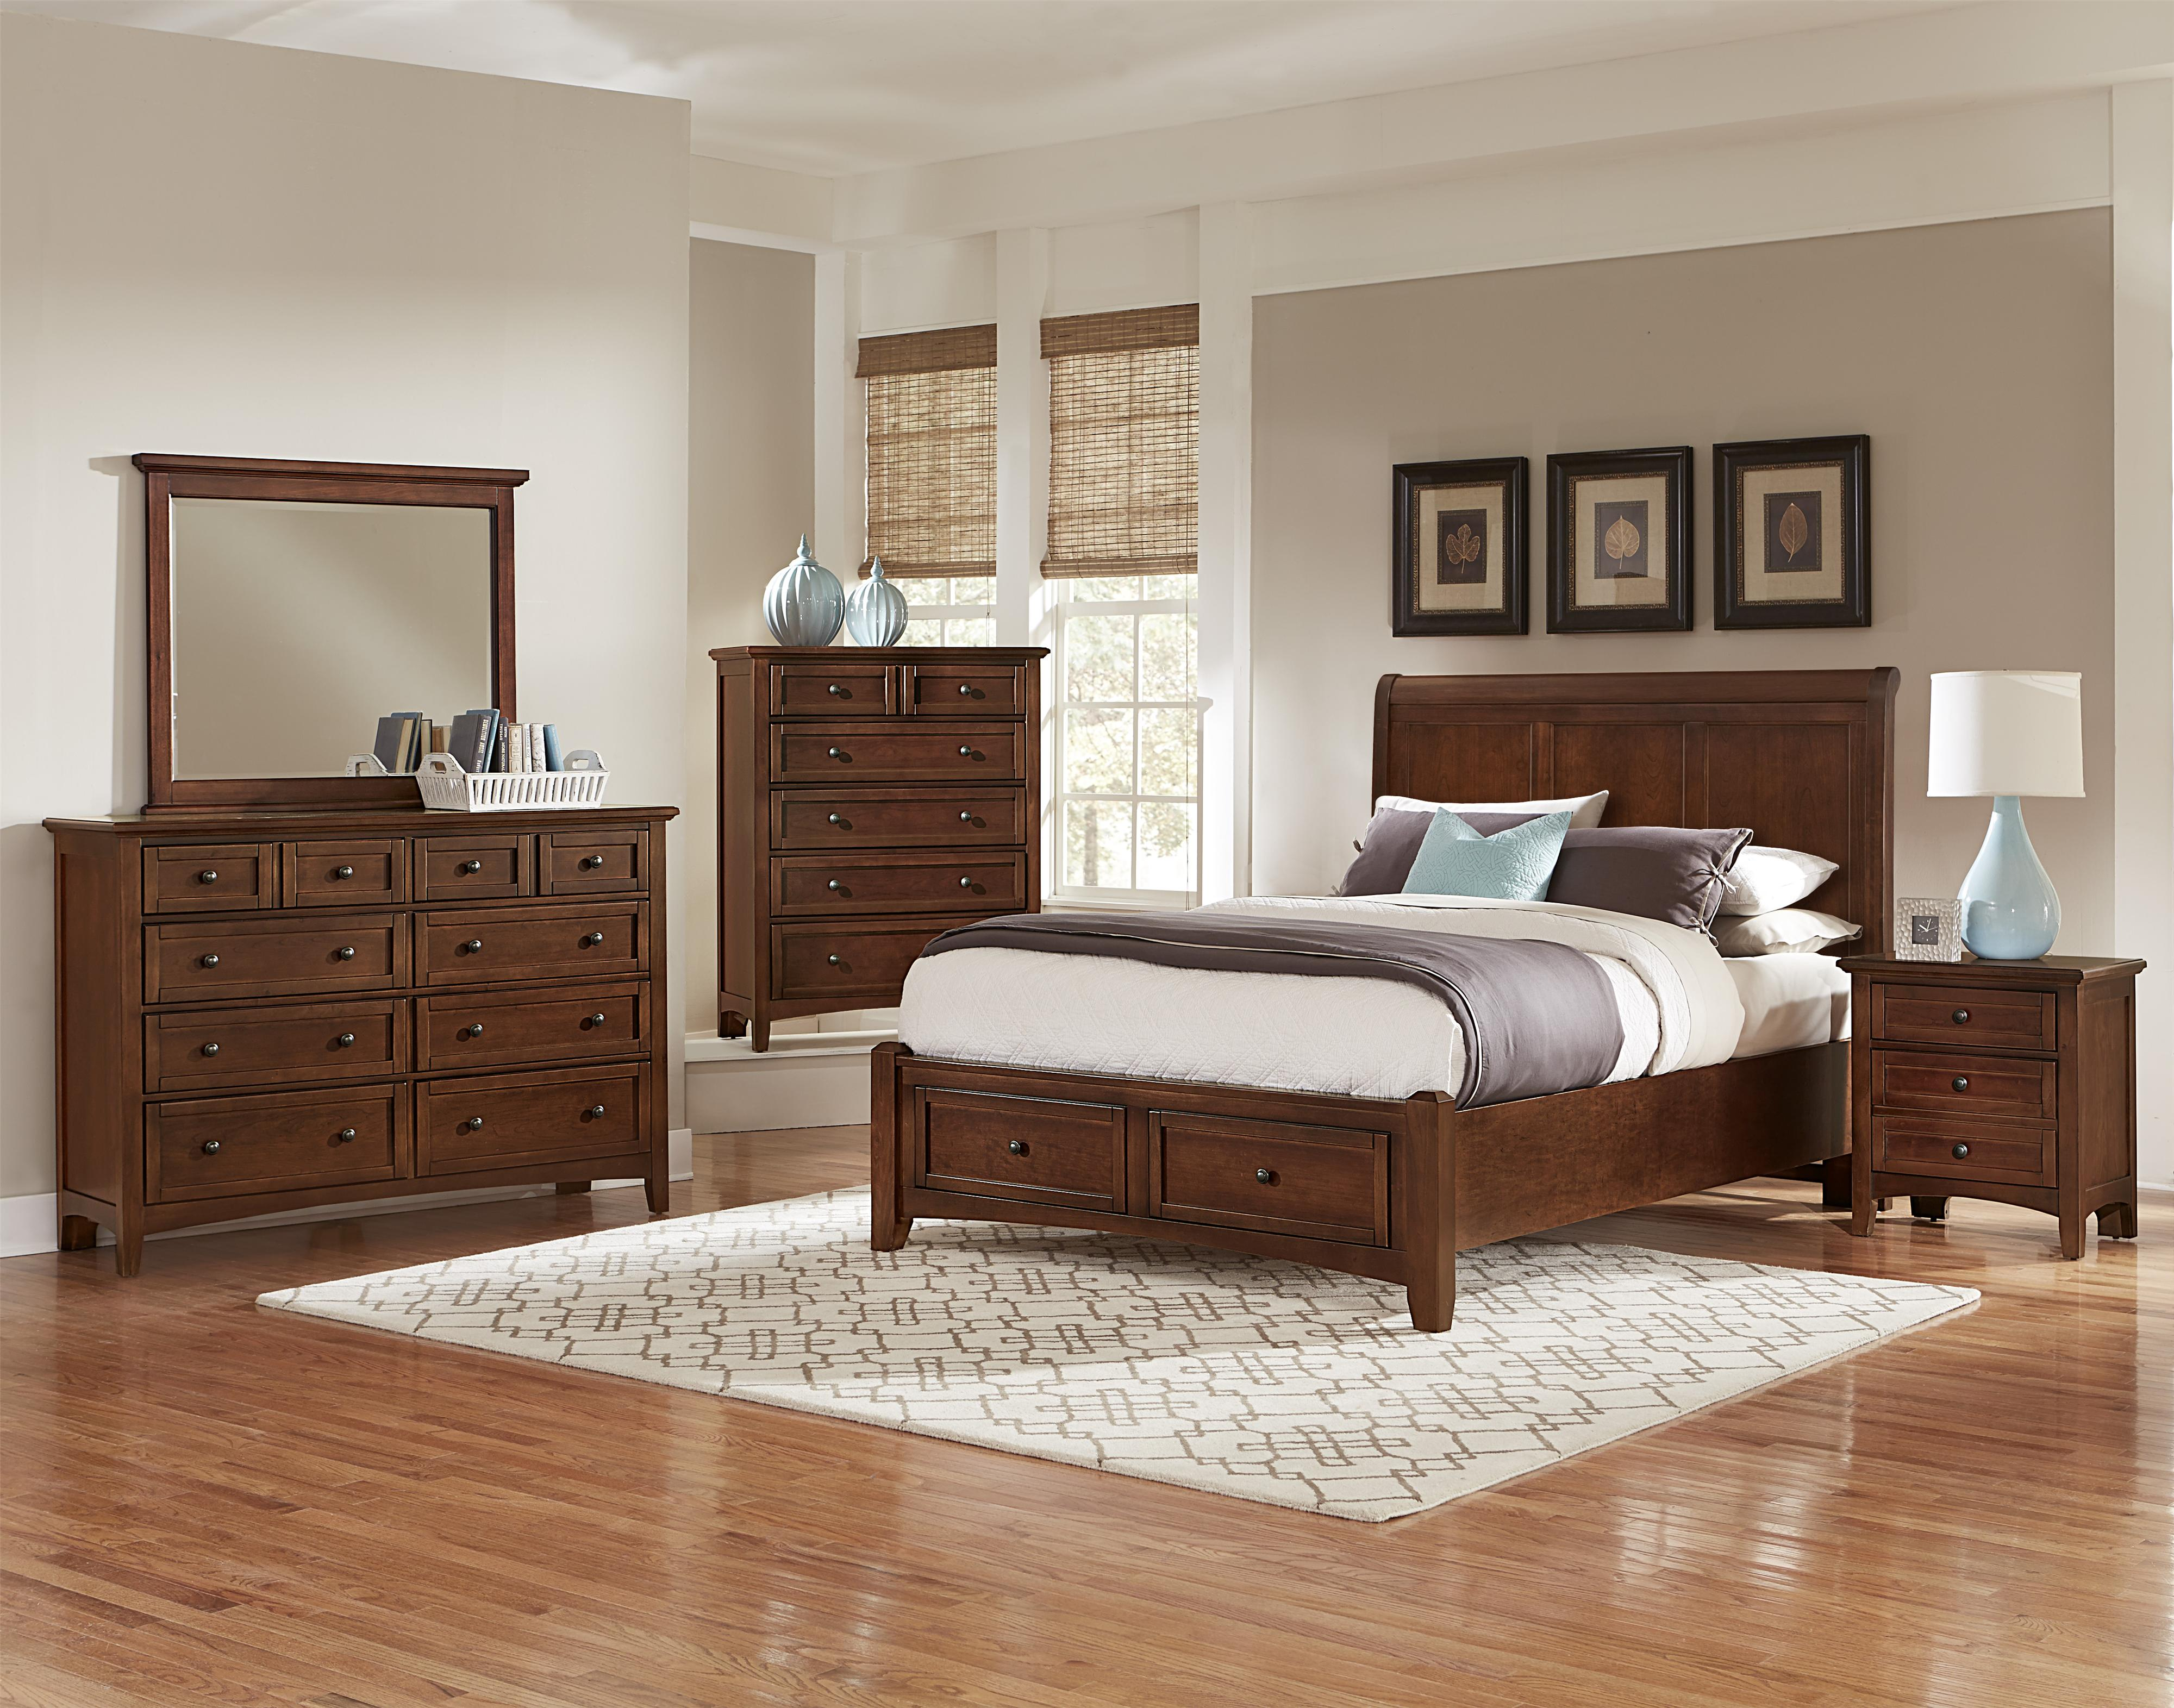 Vaughan Bassett Bonanza King Bedroom Group - Item Number: BB28 K Bedroom Group 5